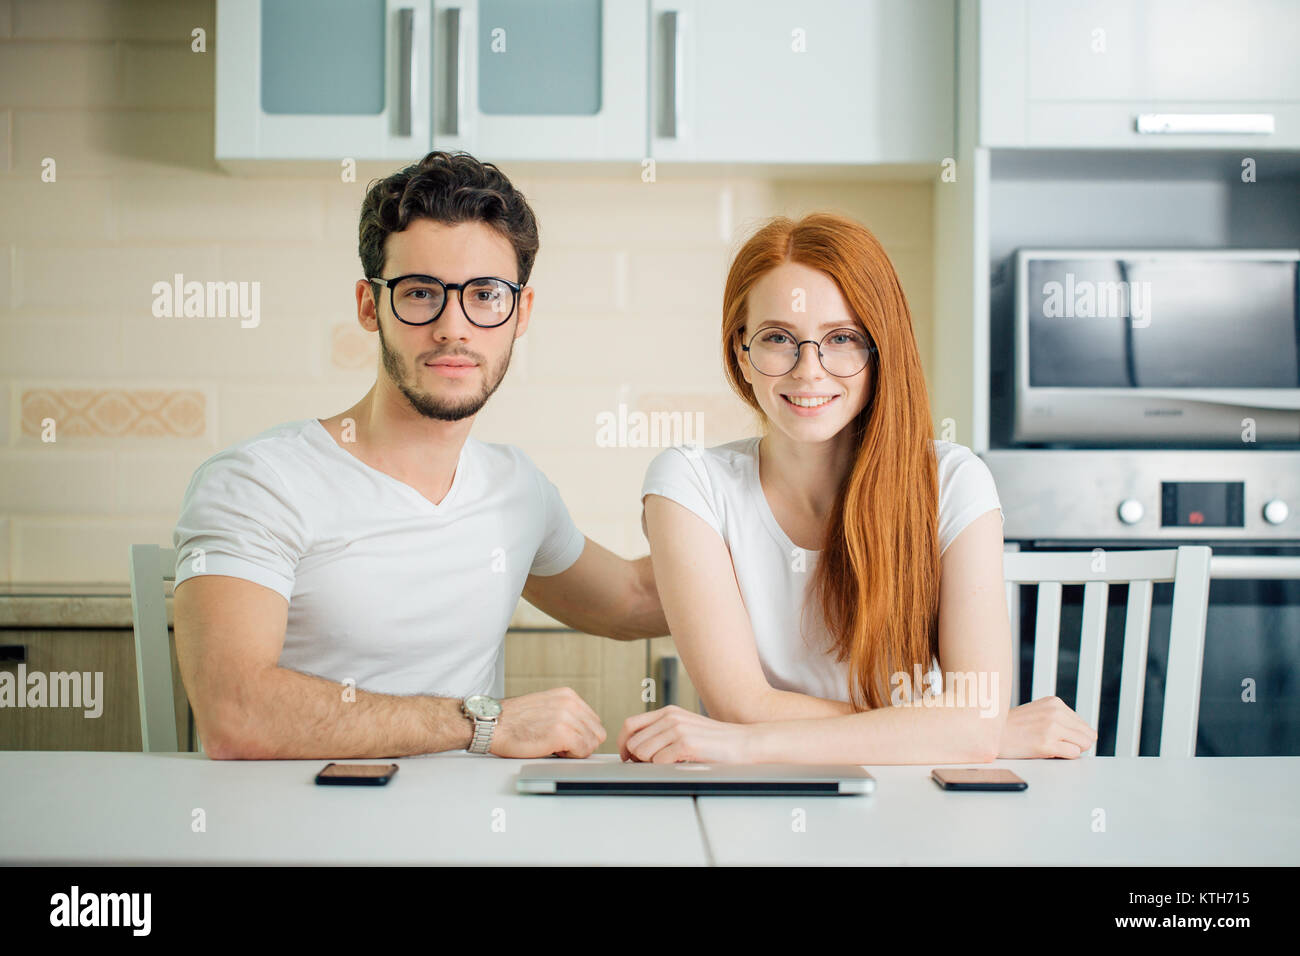 happy couple prepare to use laptop in kitchen at home - Stock Image